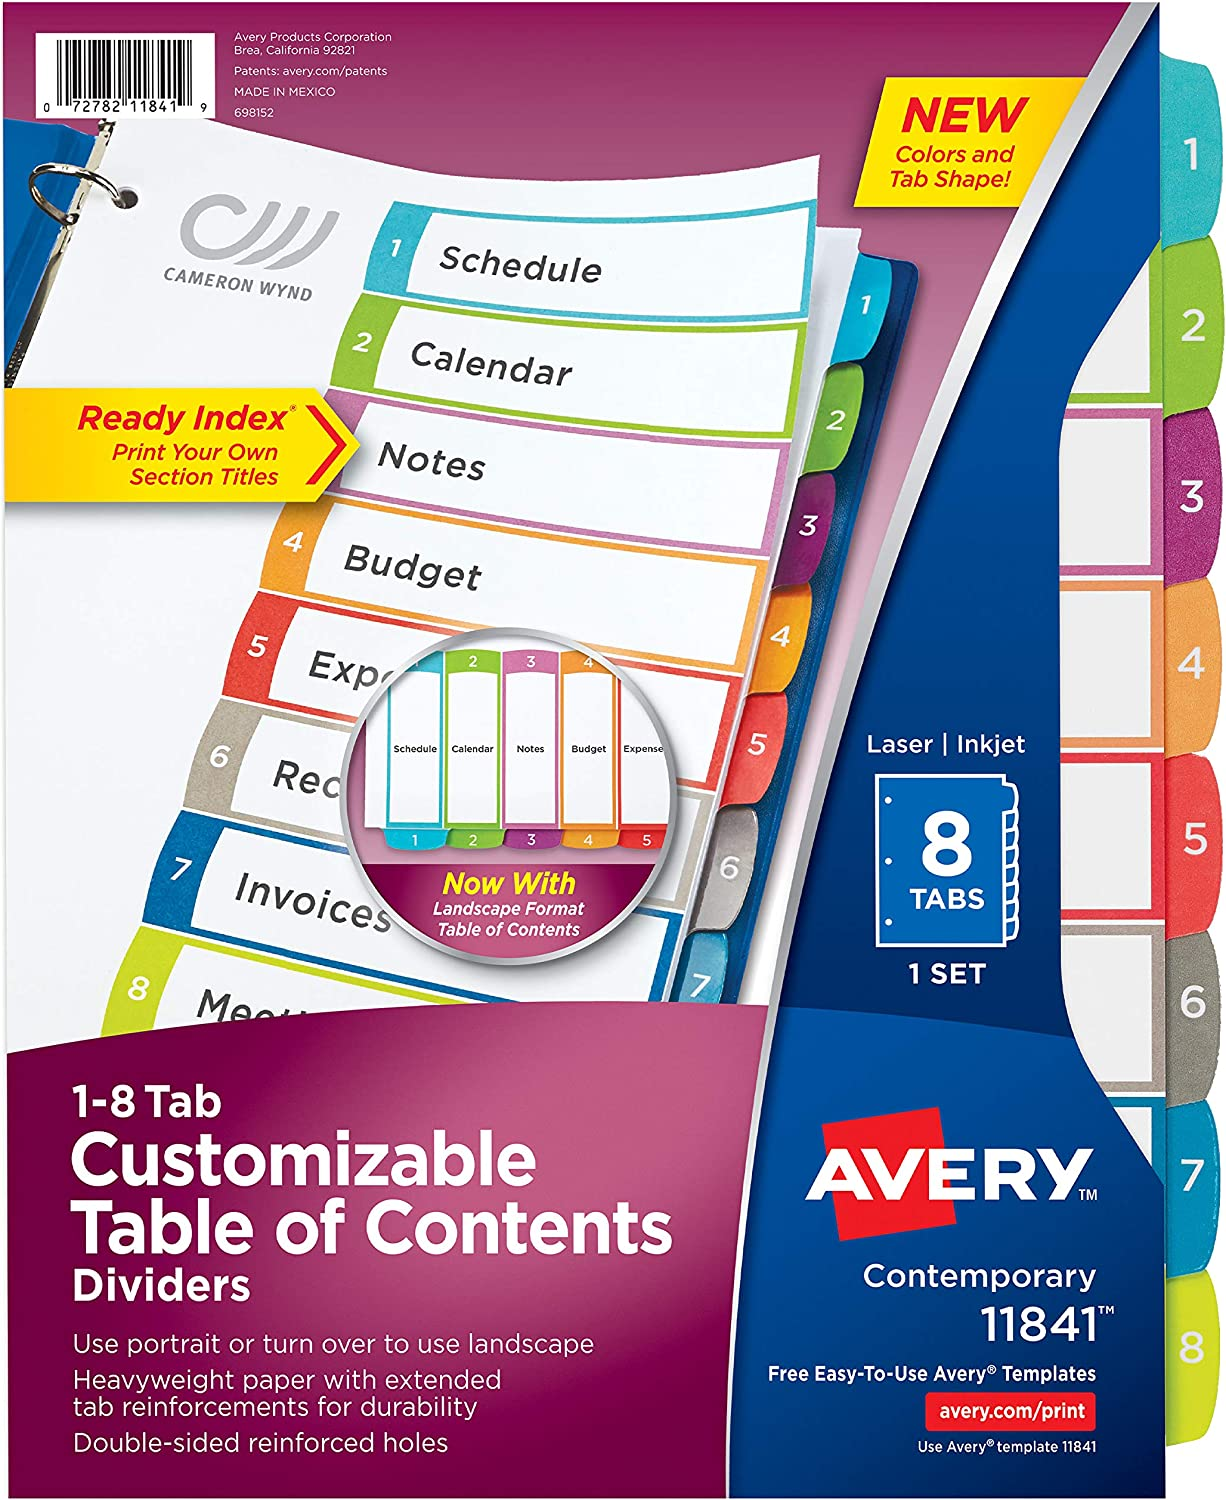 Avery 8-Tab Dividers for a 3 Ring Binders, Customizable Table of Contents, Multicolor Tabs, 1 Set (11841) : Office Products